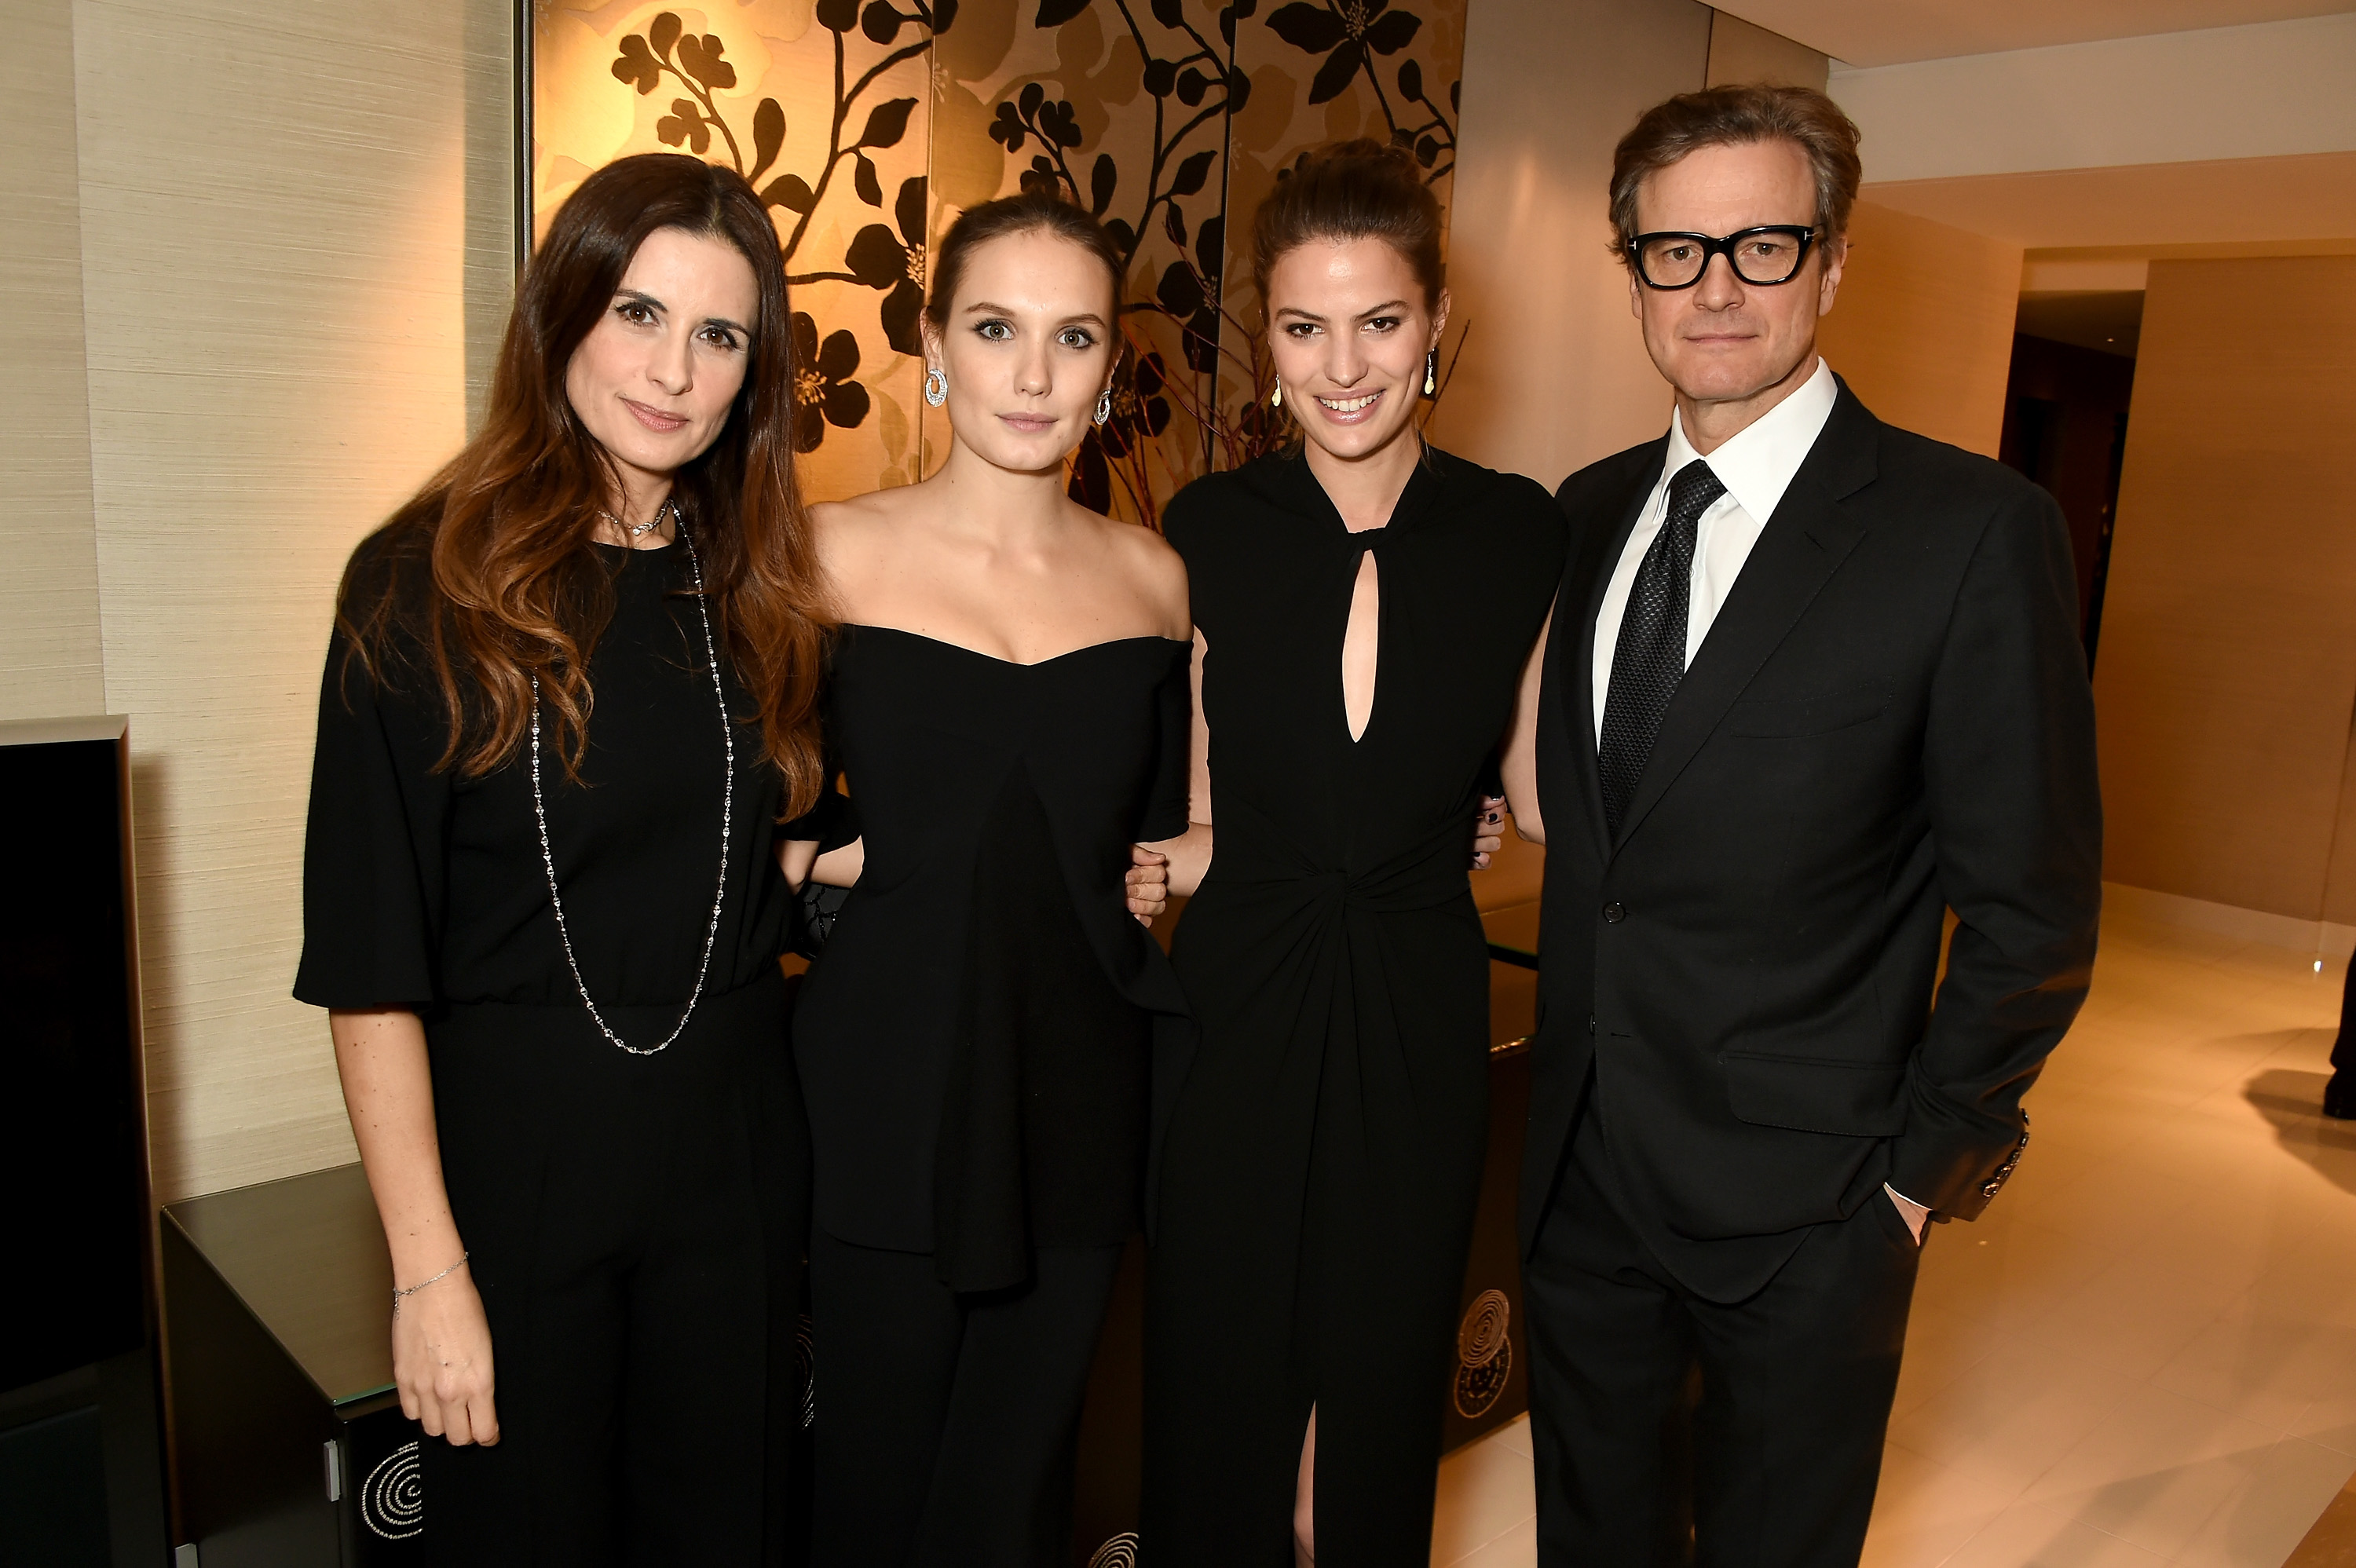 Livia Firth, Ana Girardot, Cameron Russell and Colin Firth